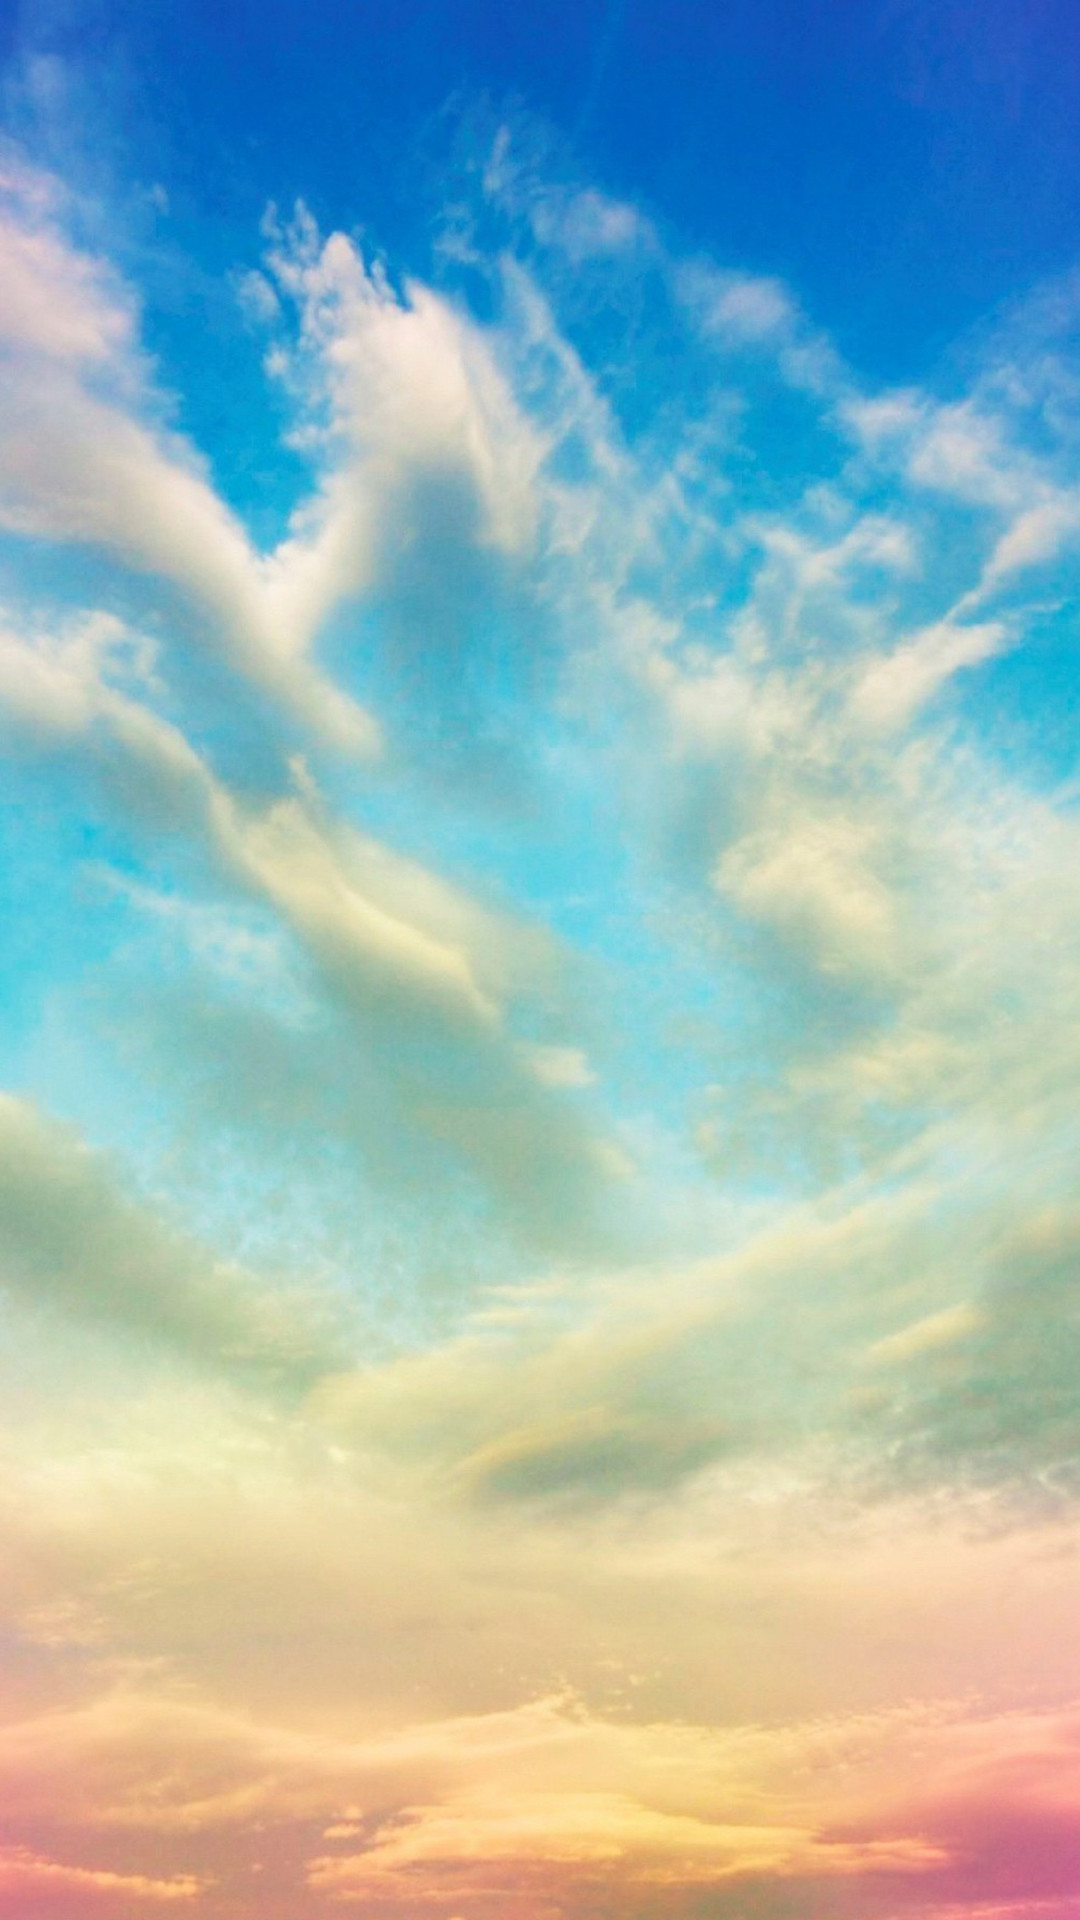 Colorful Clouds Sky Sunset iPhone 6 Plus HD Wallpaper …